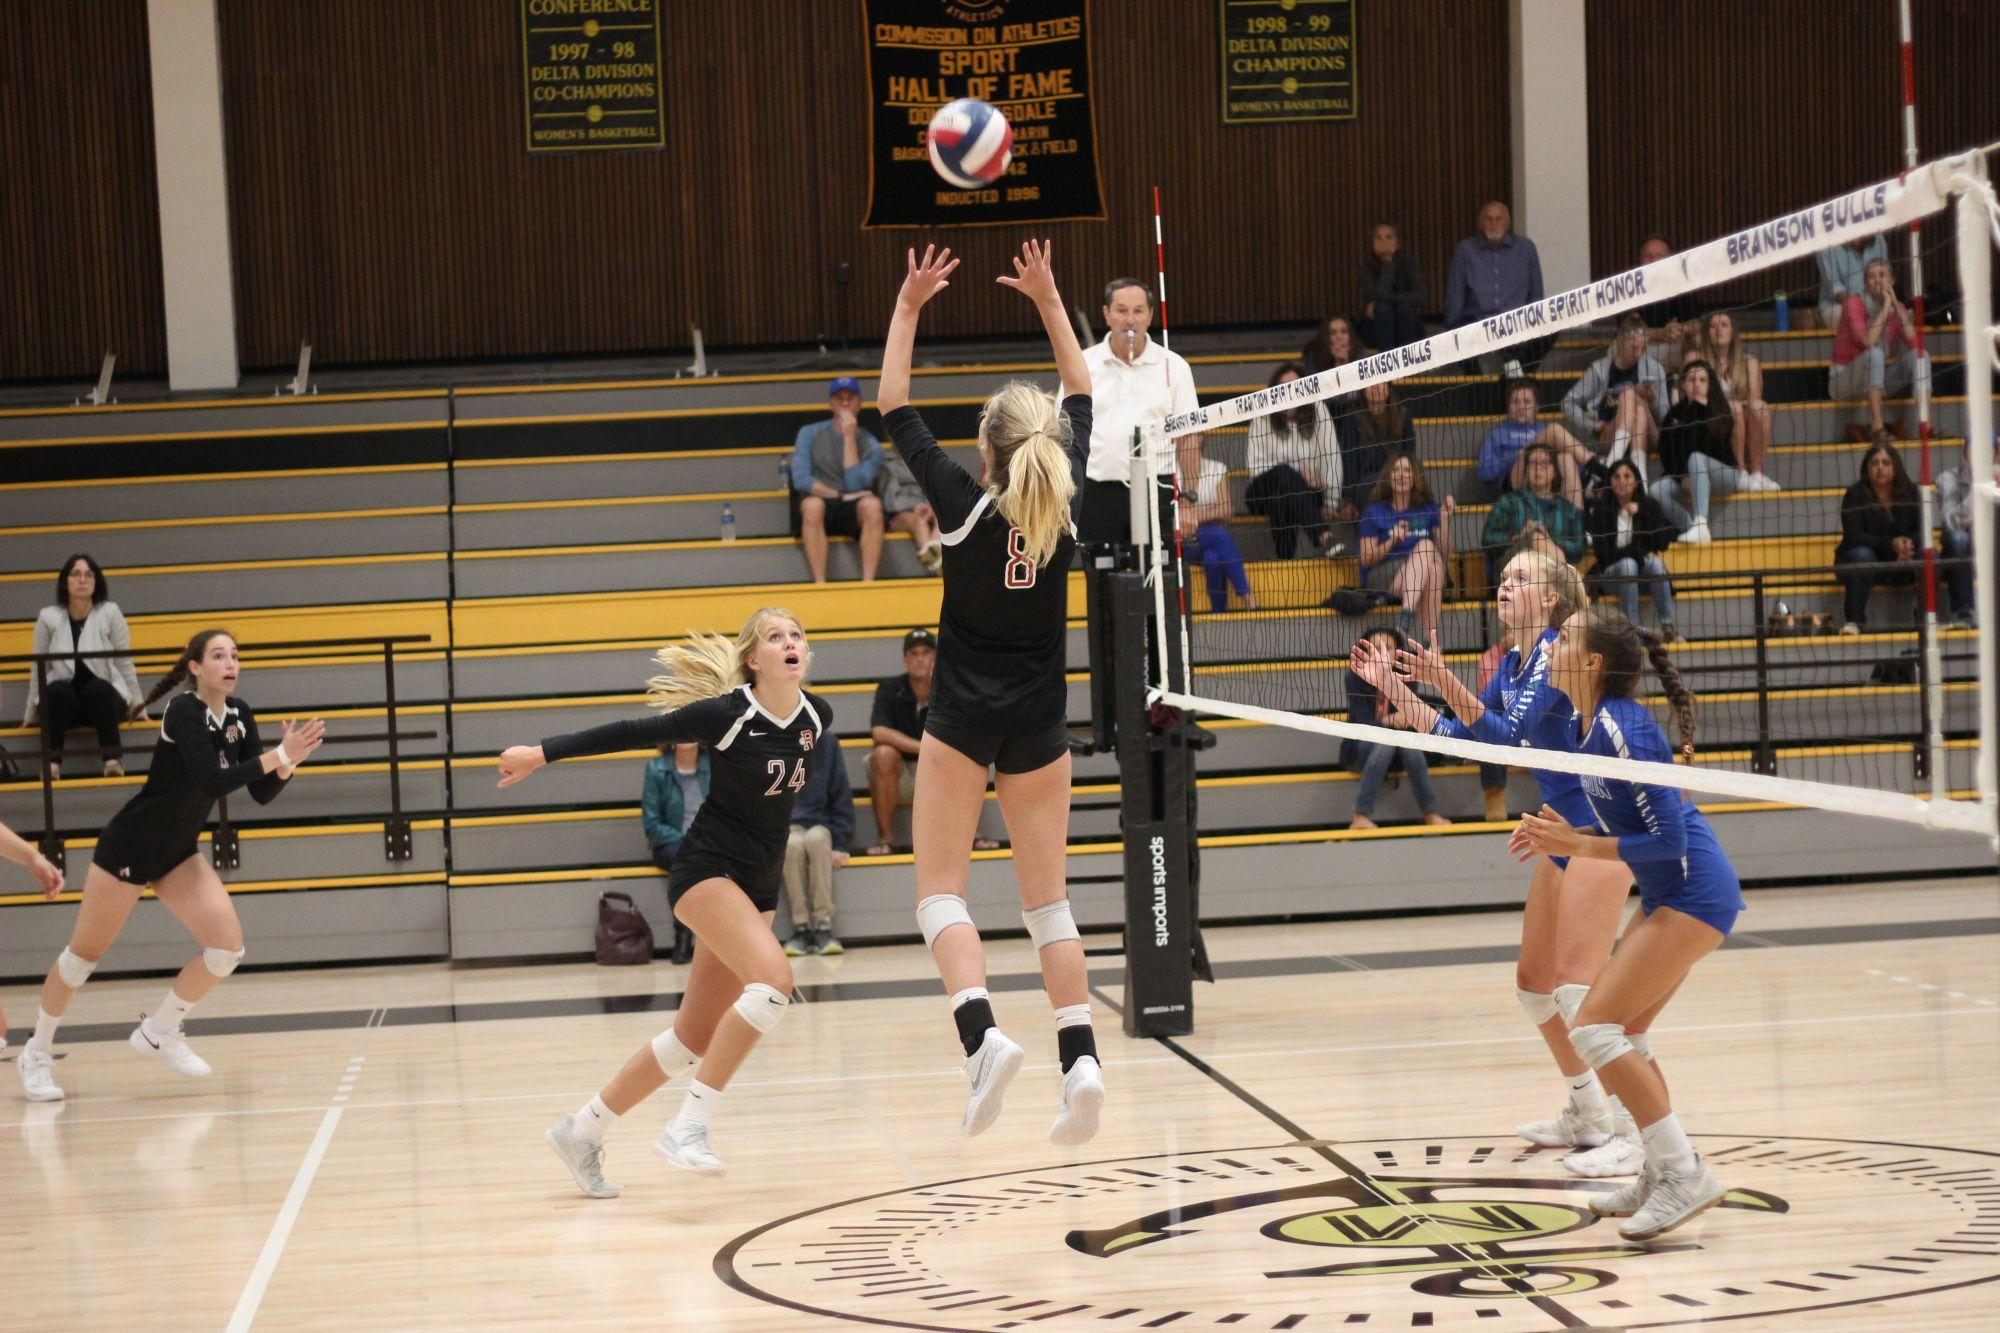 Girls' varsity volleyball secures second win of season over rival Branson